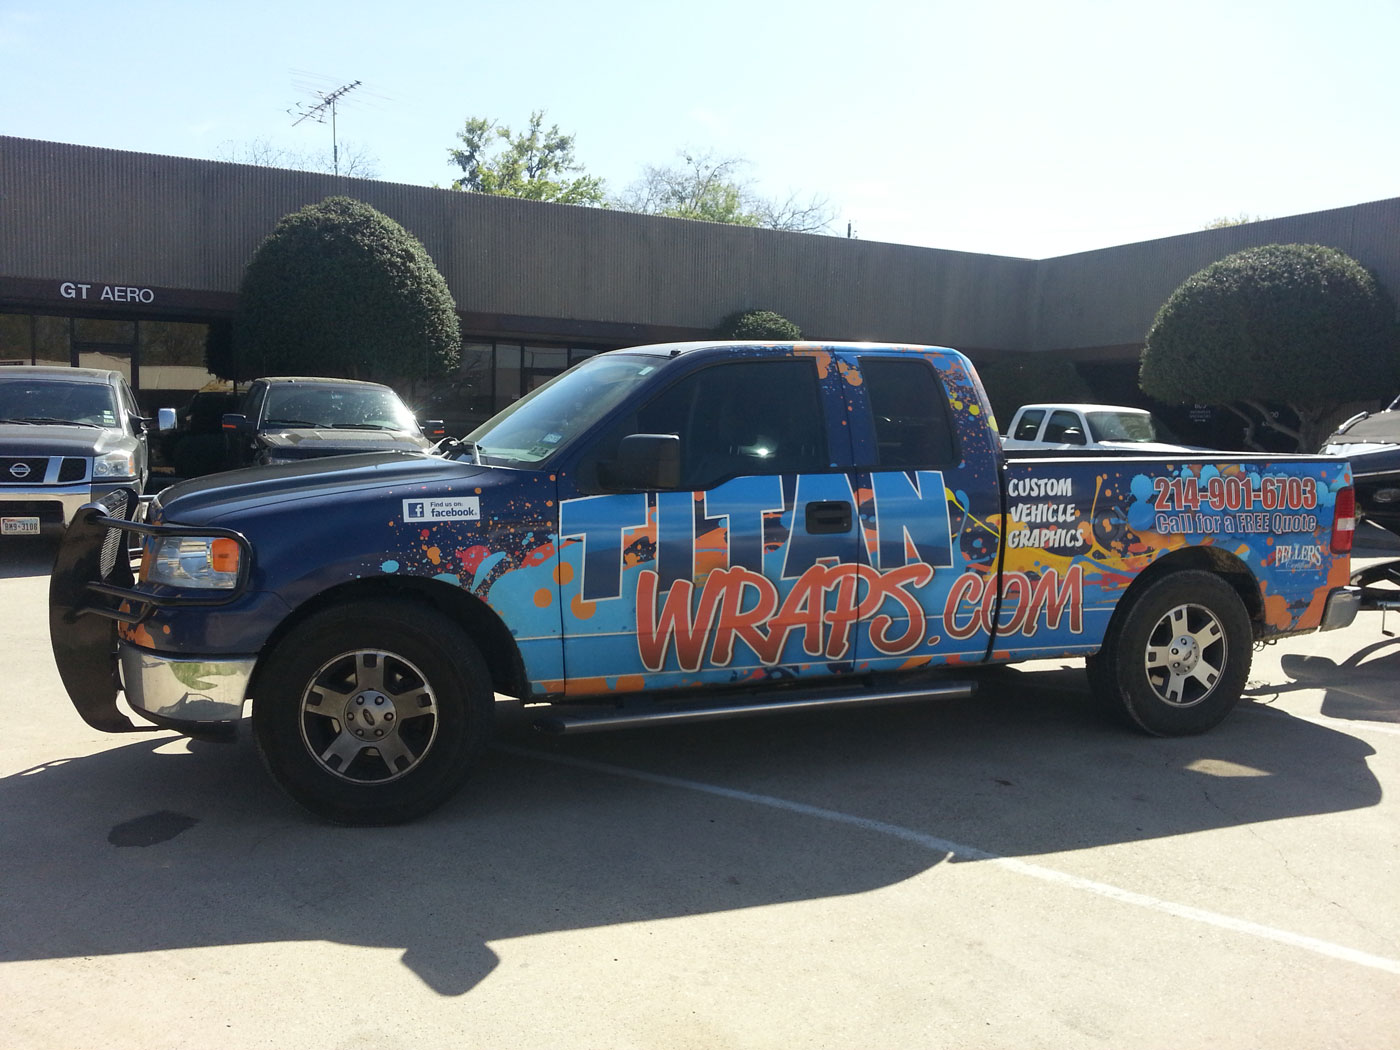 Trailer Wraps, Car Graphics from Titan Wraps in Carrollton